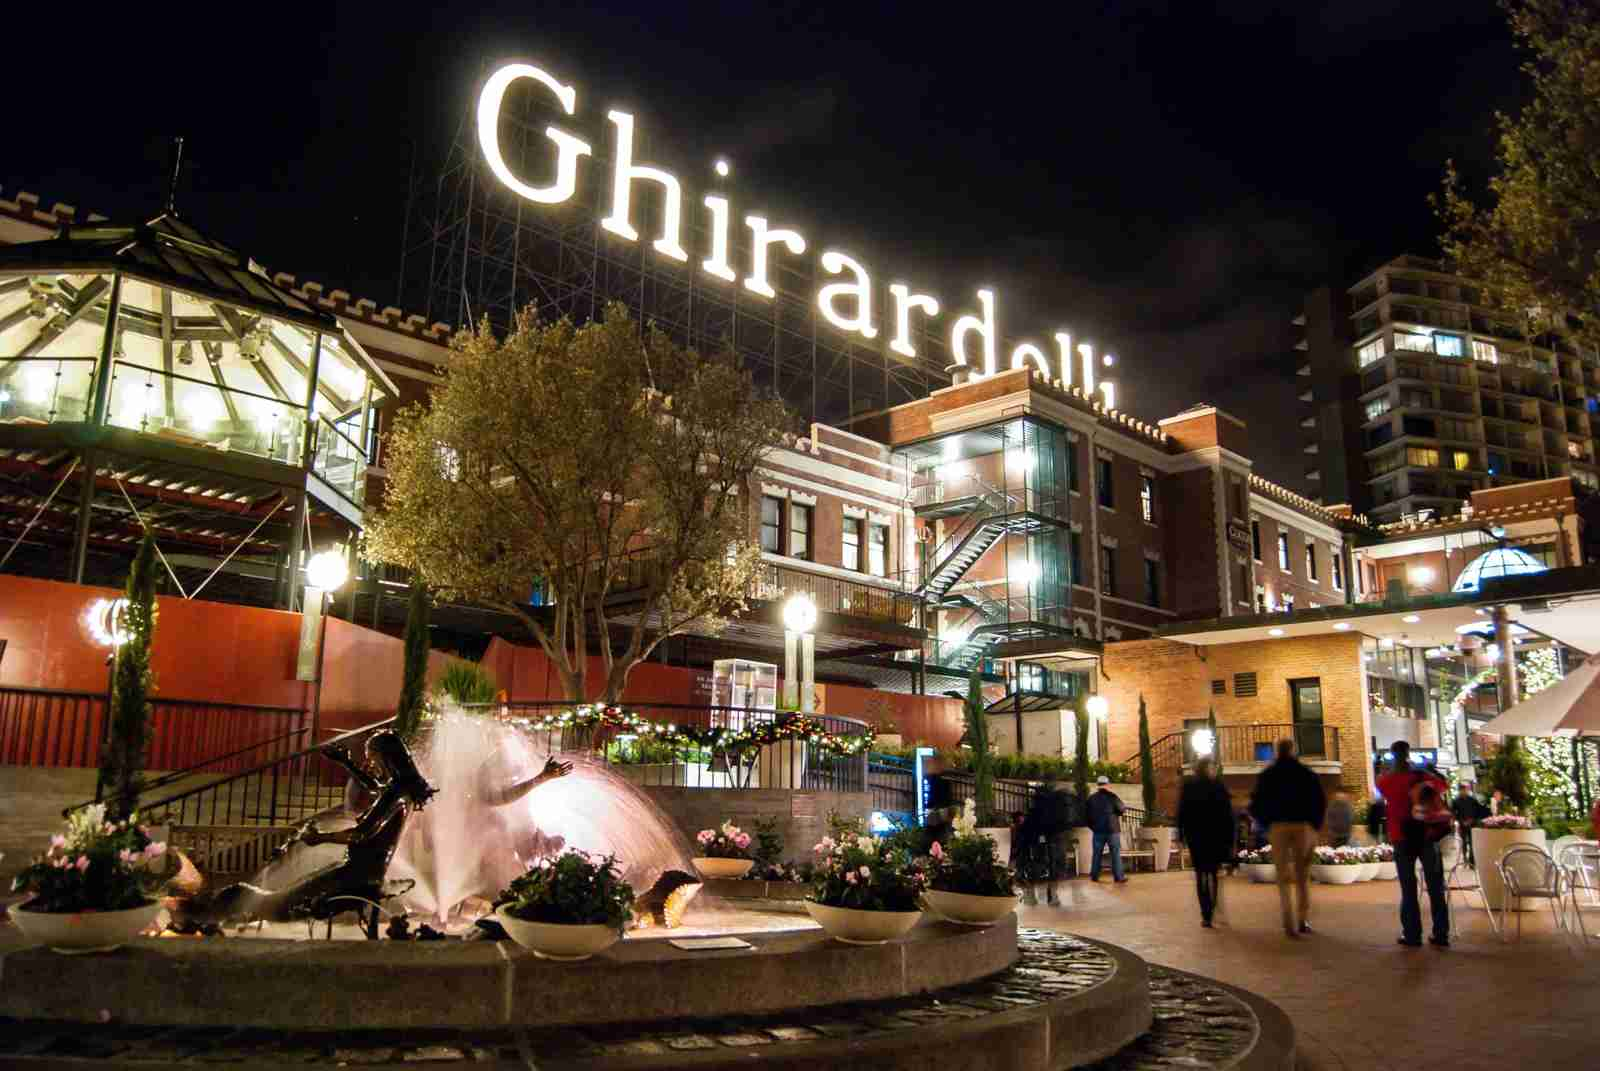 Ghirardelli Square. (Photo by Josh Spradling / 500px / Getty Images)